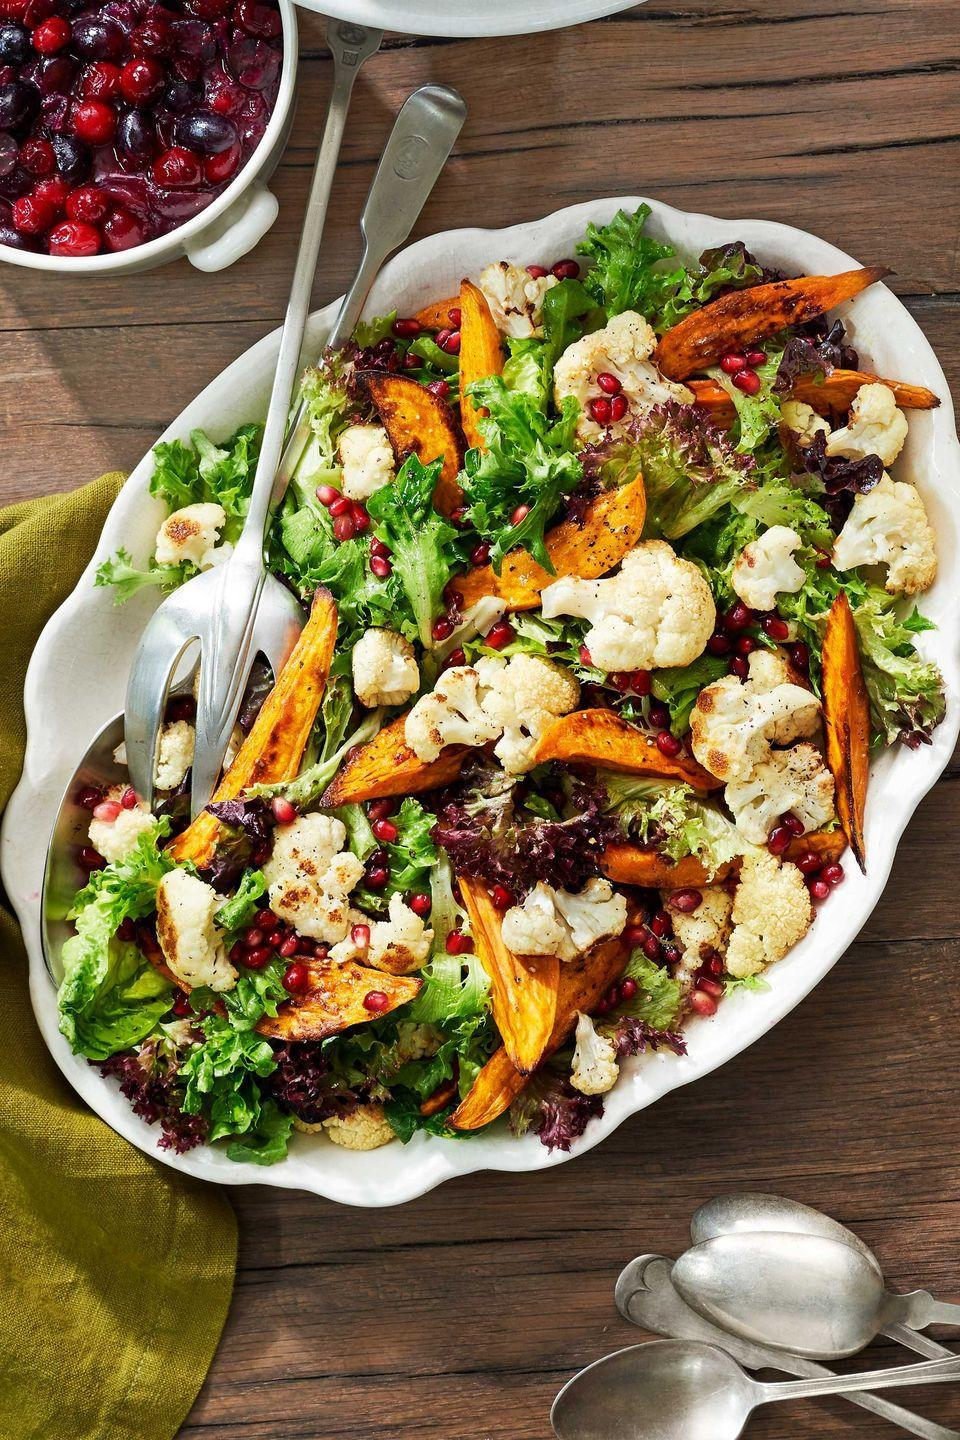 """<p>Pump up a side salad with warm, roasted vegetables.<br></p><p><strong><a href=""""https://www.countryliving.com/food-drinks/recipes/a40029/sweet-potato-and-cauliflower-salad-recipe/"""" rel=""""nofollow noopener"""" target=""""_blank"""" data-ylk=""""slk:Get the recipe"""" class=""""link rapid-noclick-resp"""">Get the recipe</a>.</strong></p><p><a class=""""link rapid-noclick-resp"""" href=""""https://www.amazon.com/Nordic-Ware-Natural-Aluminum-Commercial/dp/B0064OM53G/?tag=syn-yahoo-20&ascsubtag=%5Bartid%7C10050.g.877%5Bsrc%7Cyahoo-us"""" rel=""""nofollow noopener"""" target=""""_blank"""" data-ylk=""""slk:SHOP BAKING SHEETS"""">SHOP BAKING SHEETS</a></p>"""